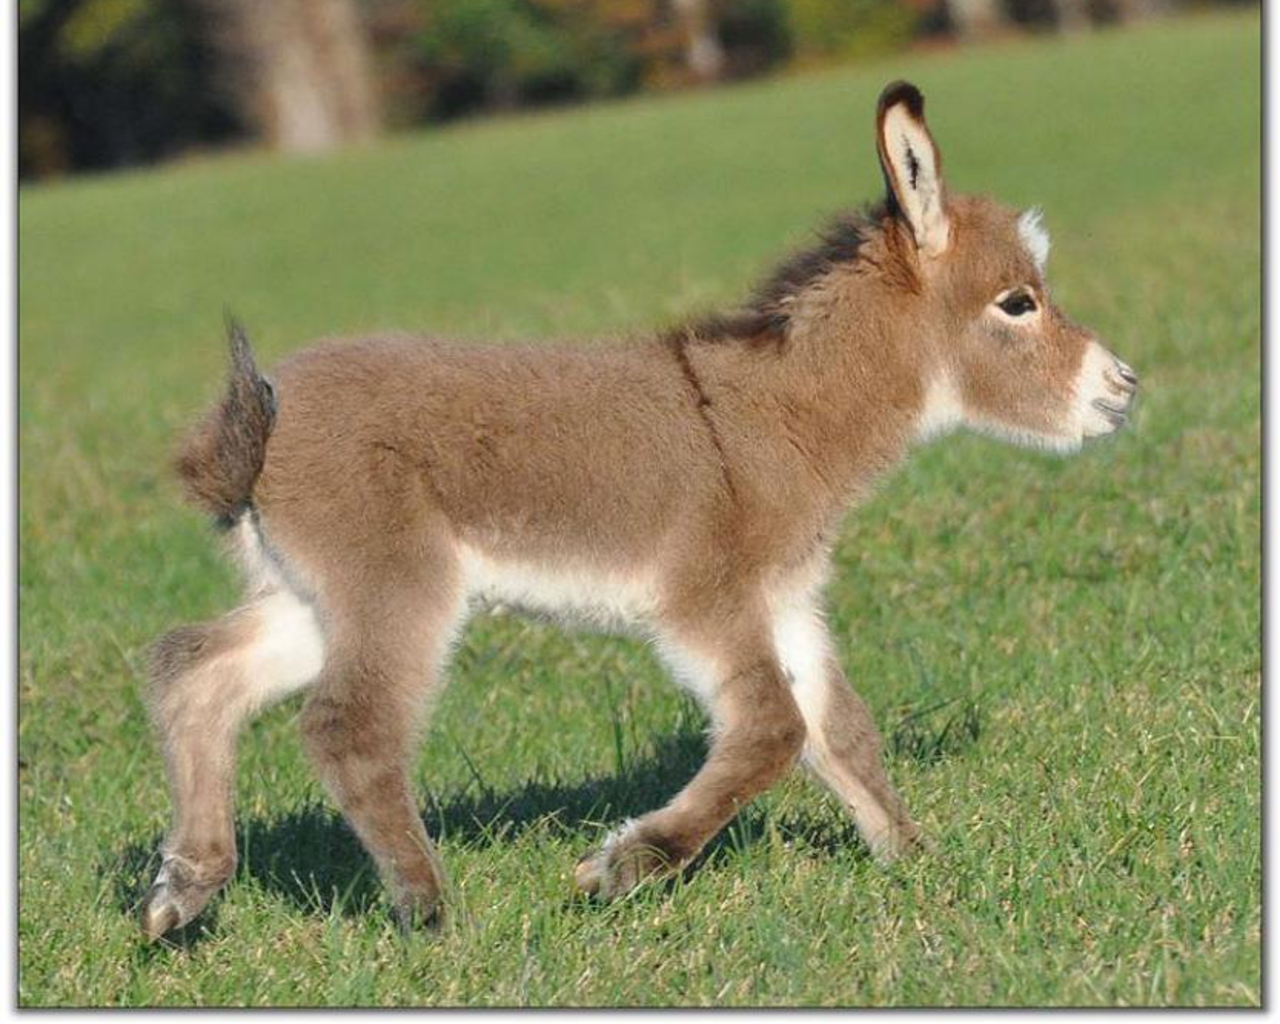 Donkeys Images Donkey Baby HD Wallpaper And Background Photos